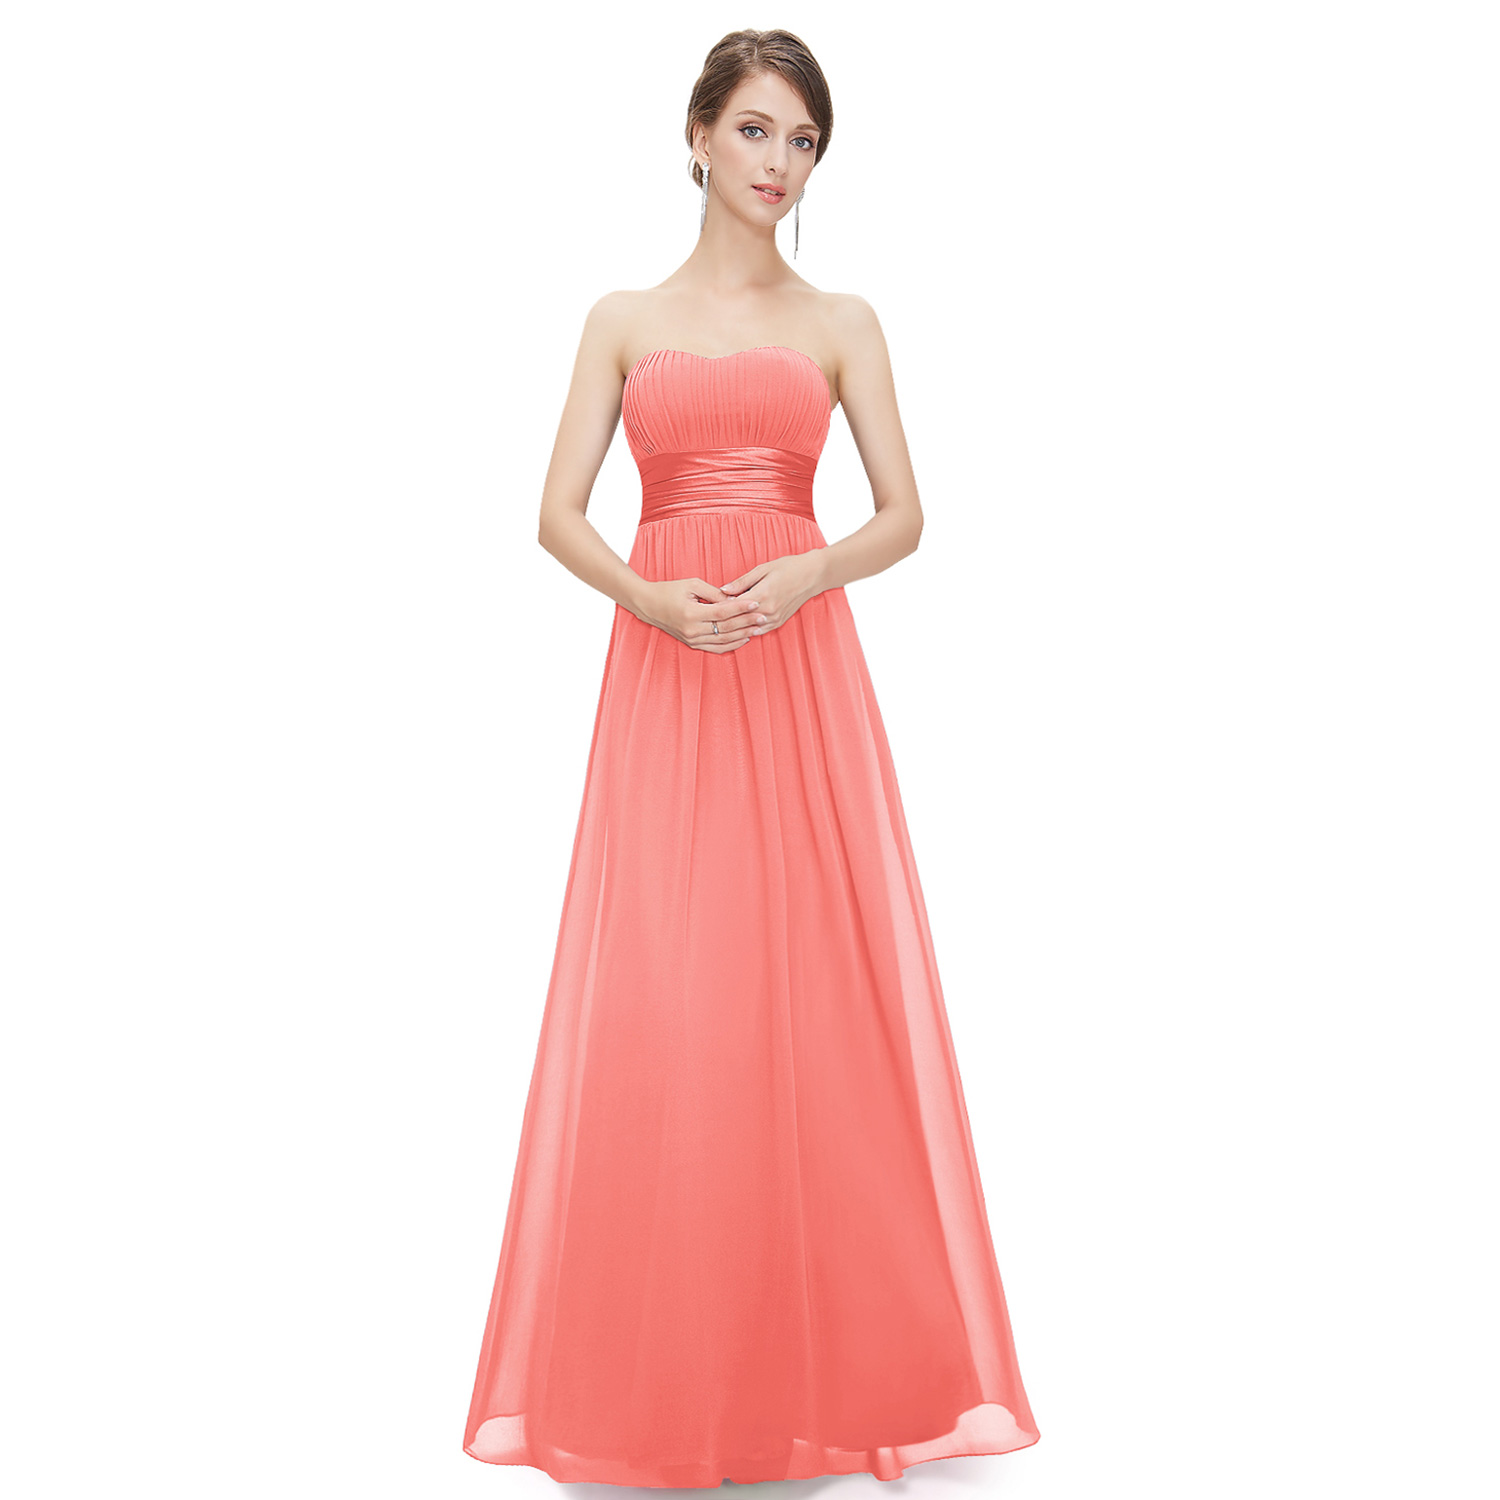 Wedding Dresses   Us : Us long chiffon strapless wedding bridesmaid dresses prom